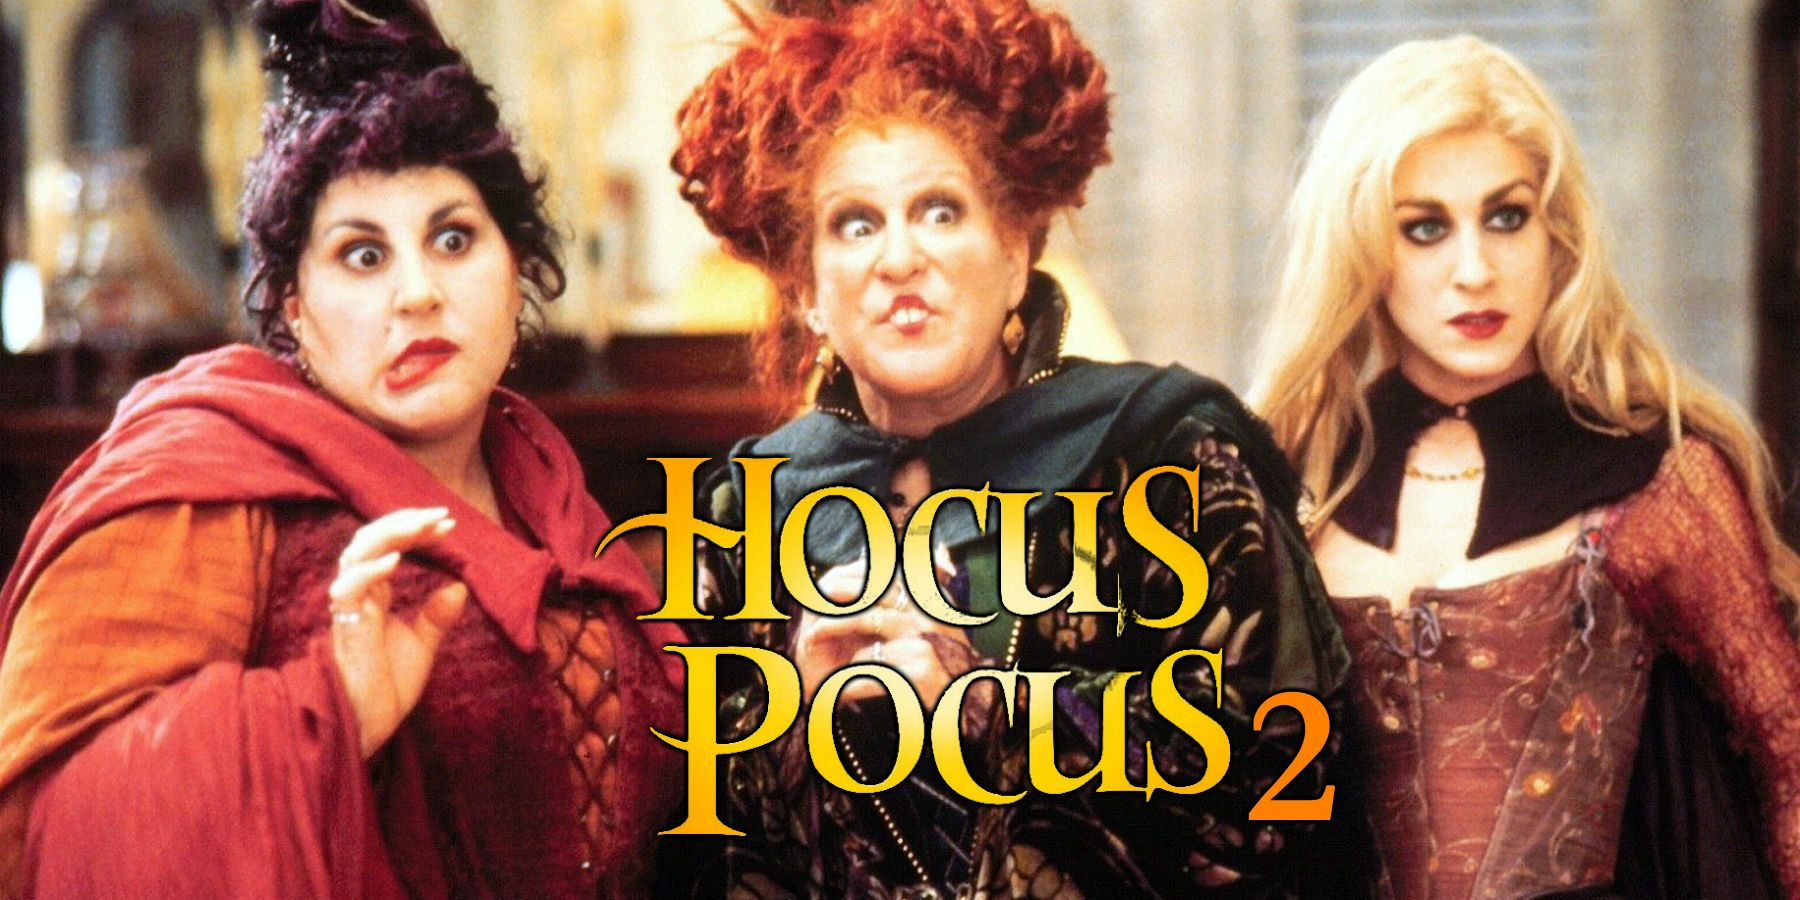 Everything You Need To Know About Hocus Pocus 2, The TV Movie Reboot